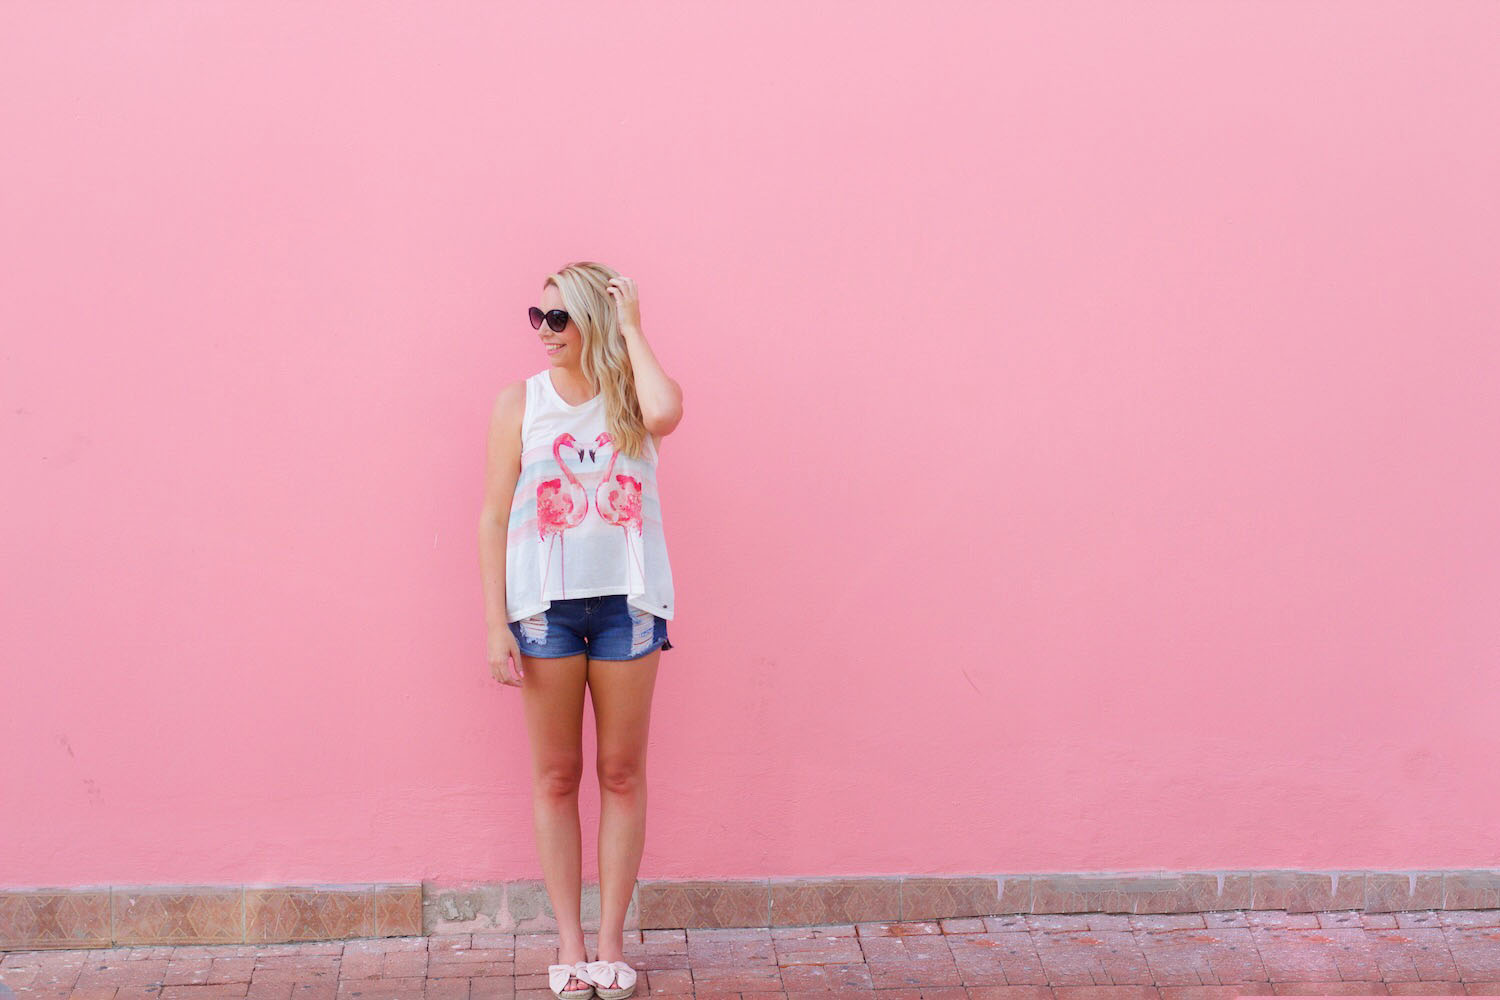 pink-the-town-aruba-pink-wall-pink-mall-21